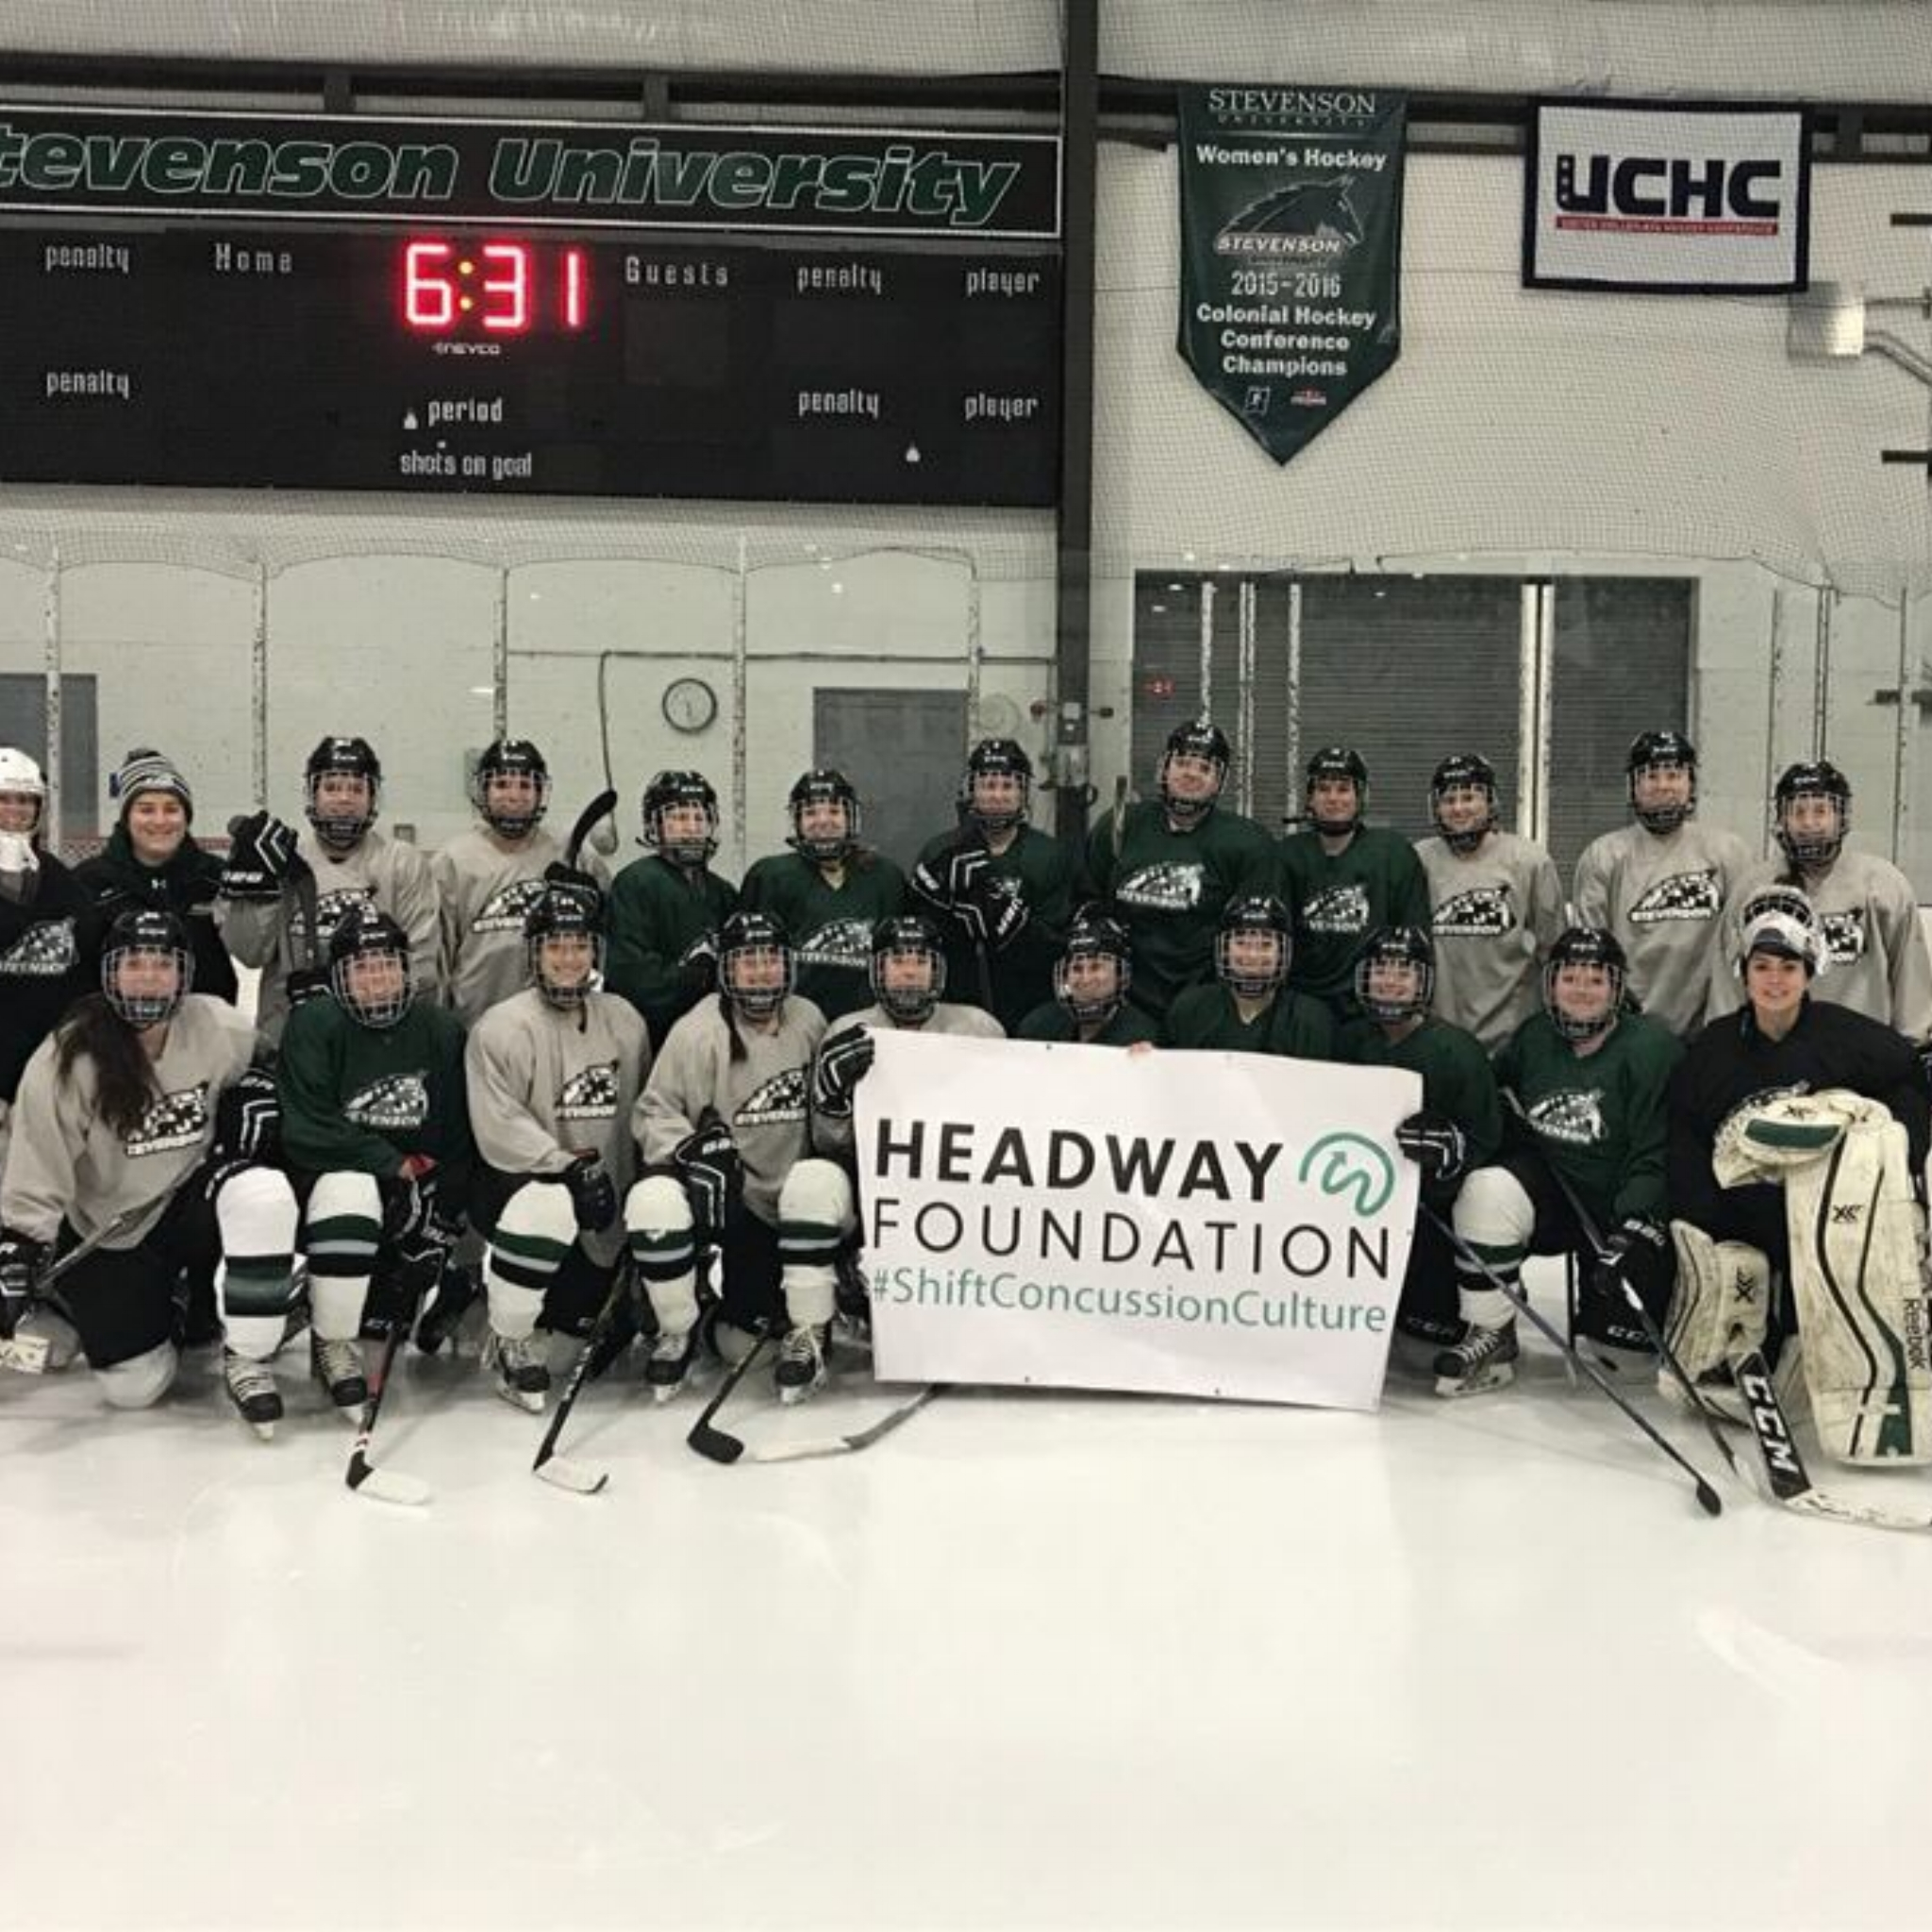 Stevenson Women's Hockey